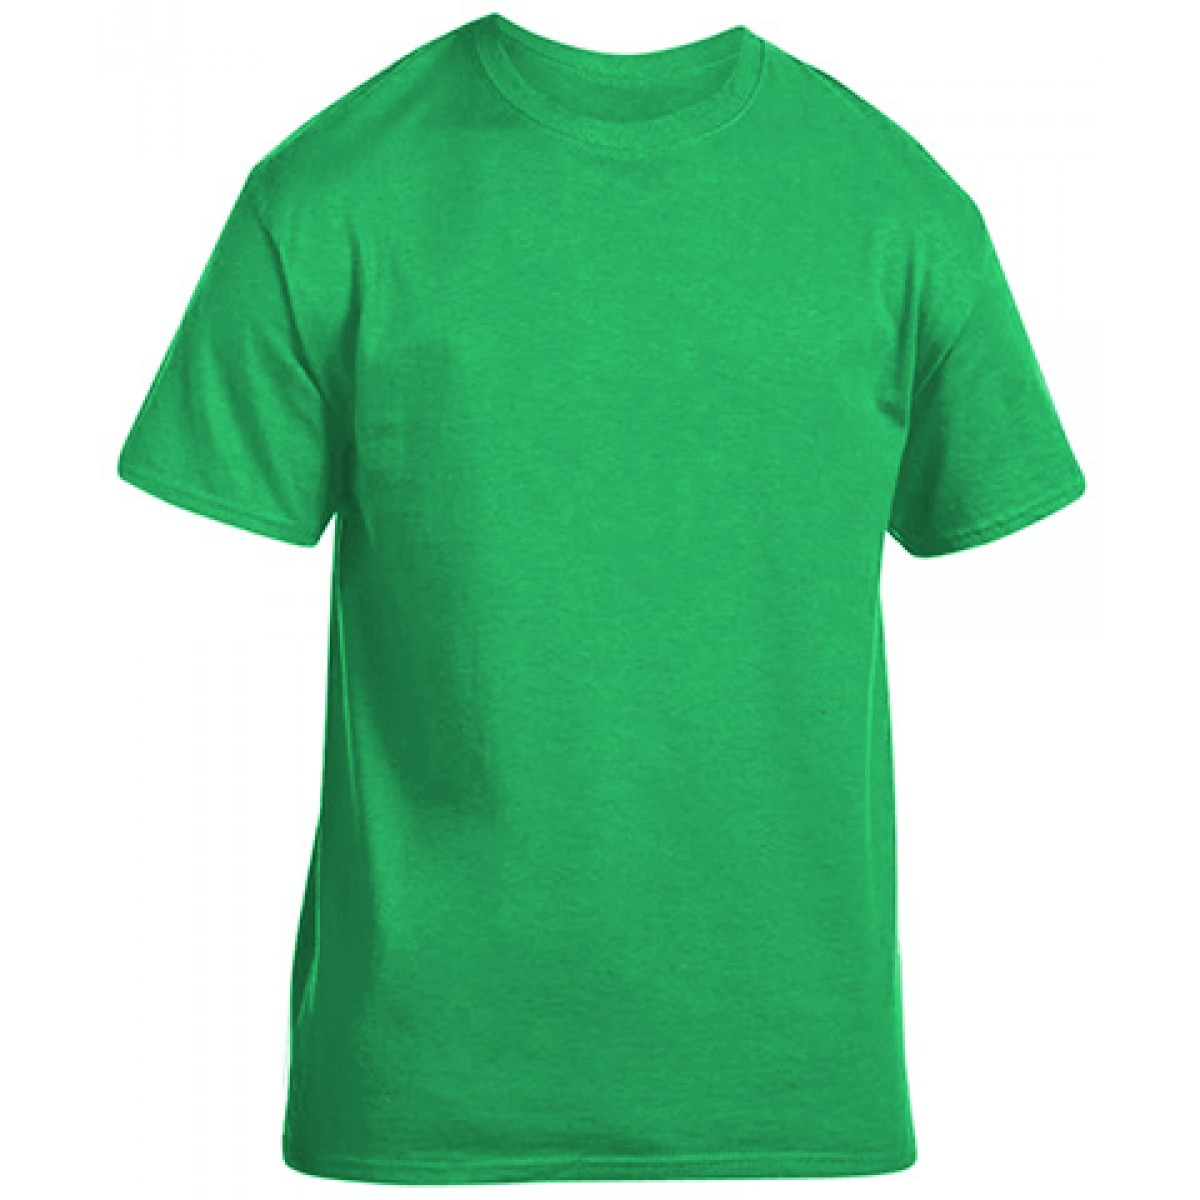 Soft 100% Cotton T-Shirt-Electric Green -M